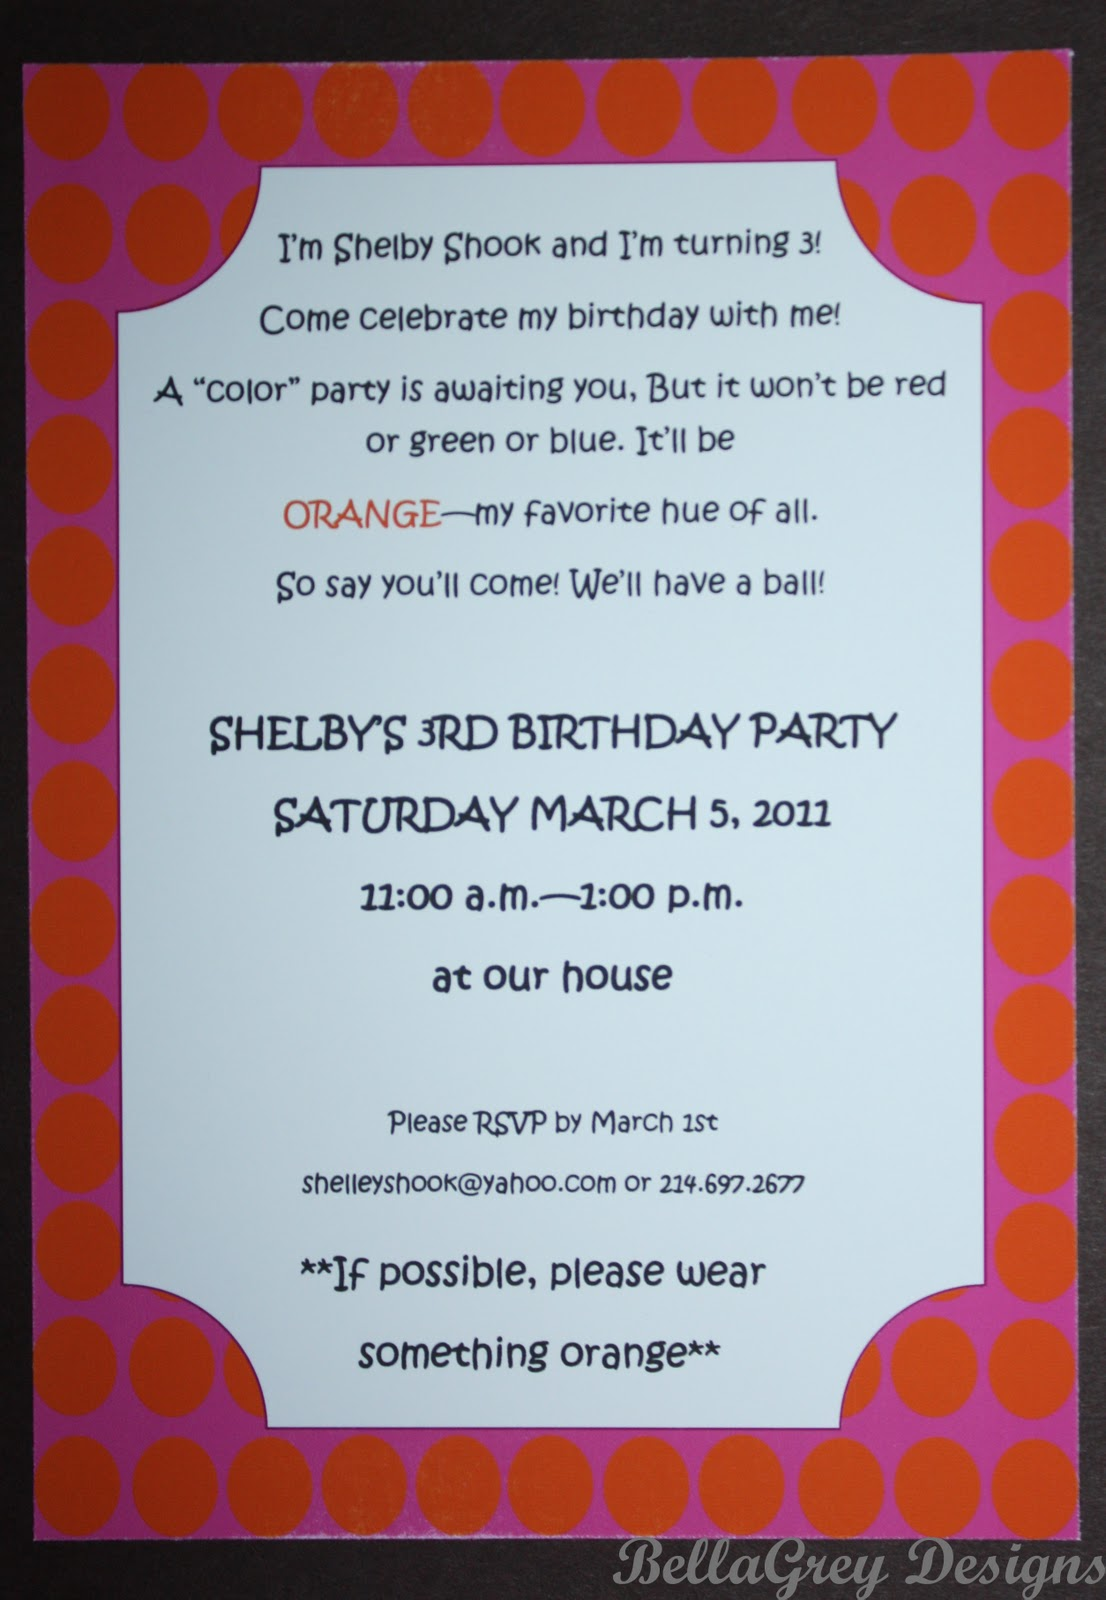 wording for slumber party birthday invitations - Picture Ideas ...